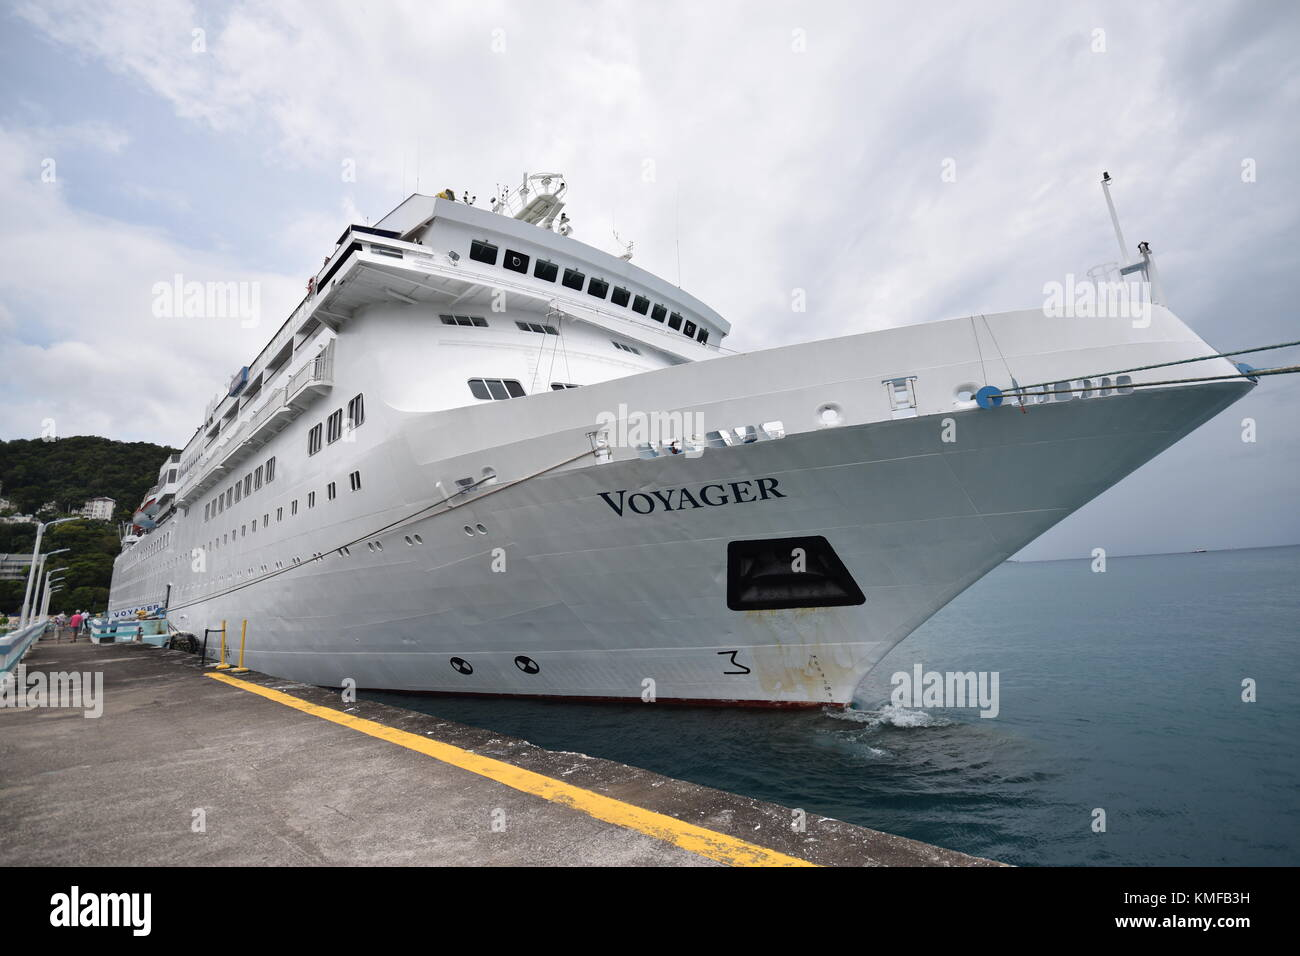 Cuise ship Voyager in Ocho Rios, Jamaica, Caribbean - Stock Image